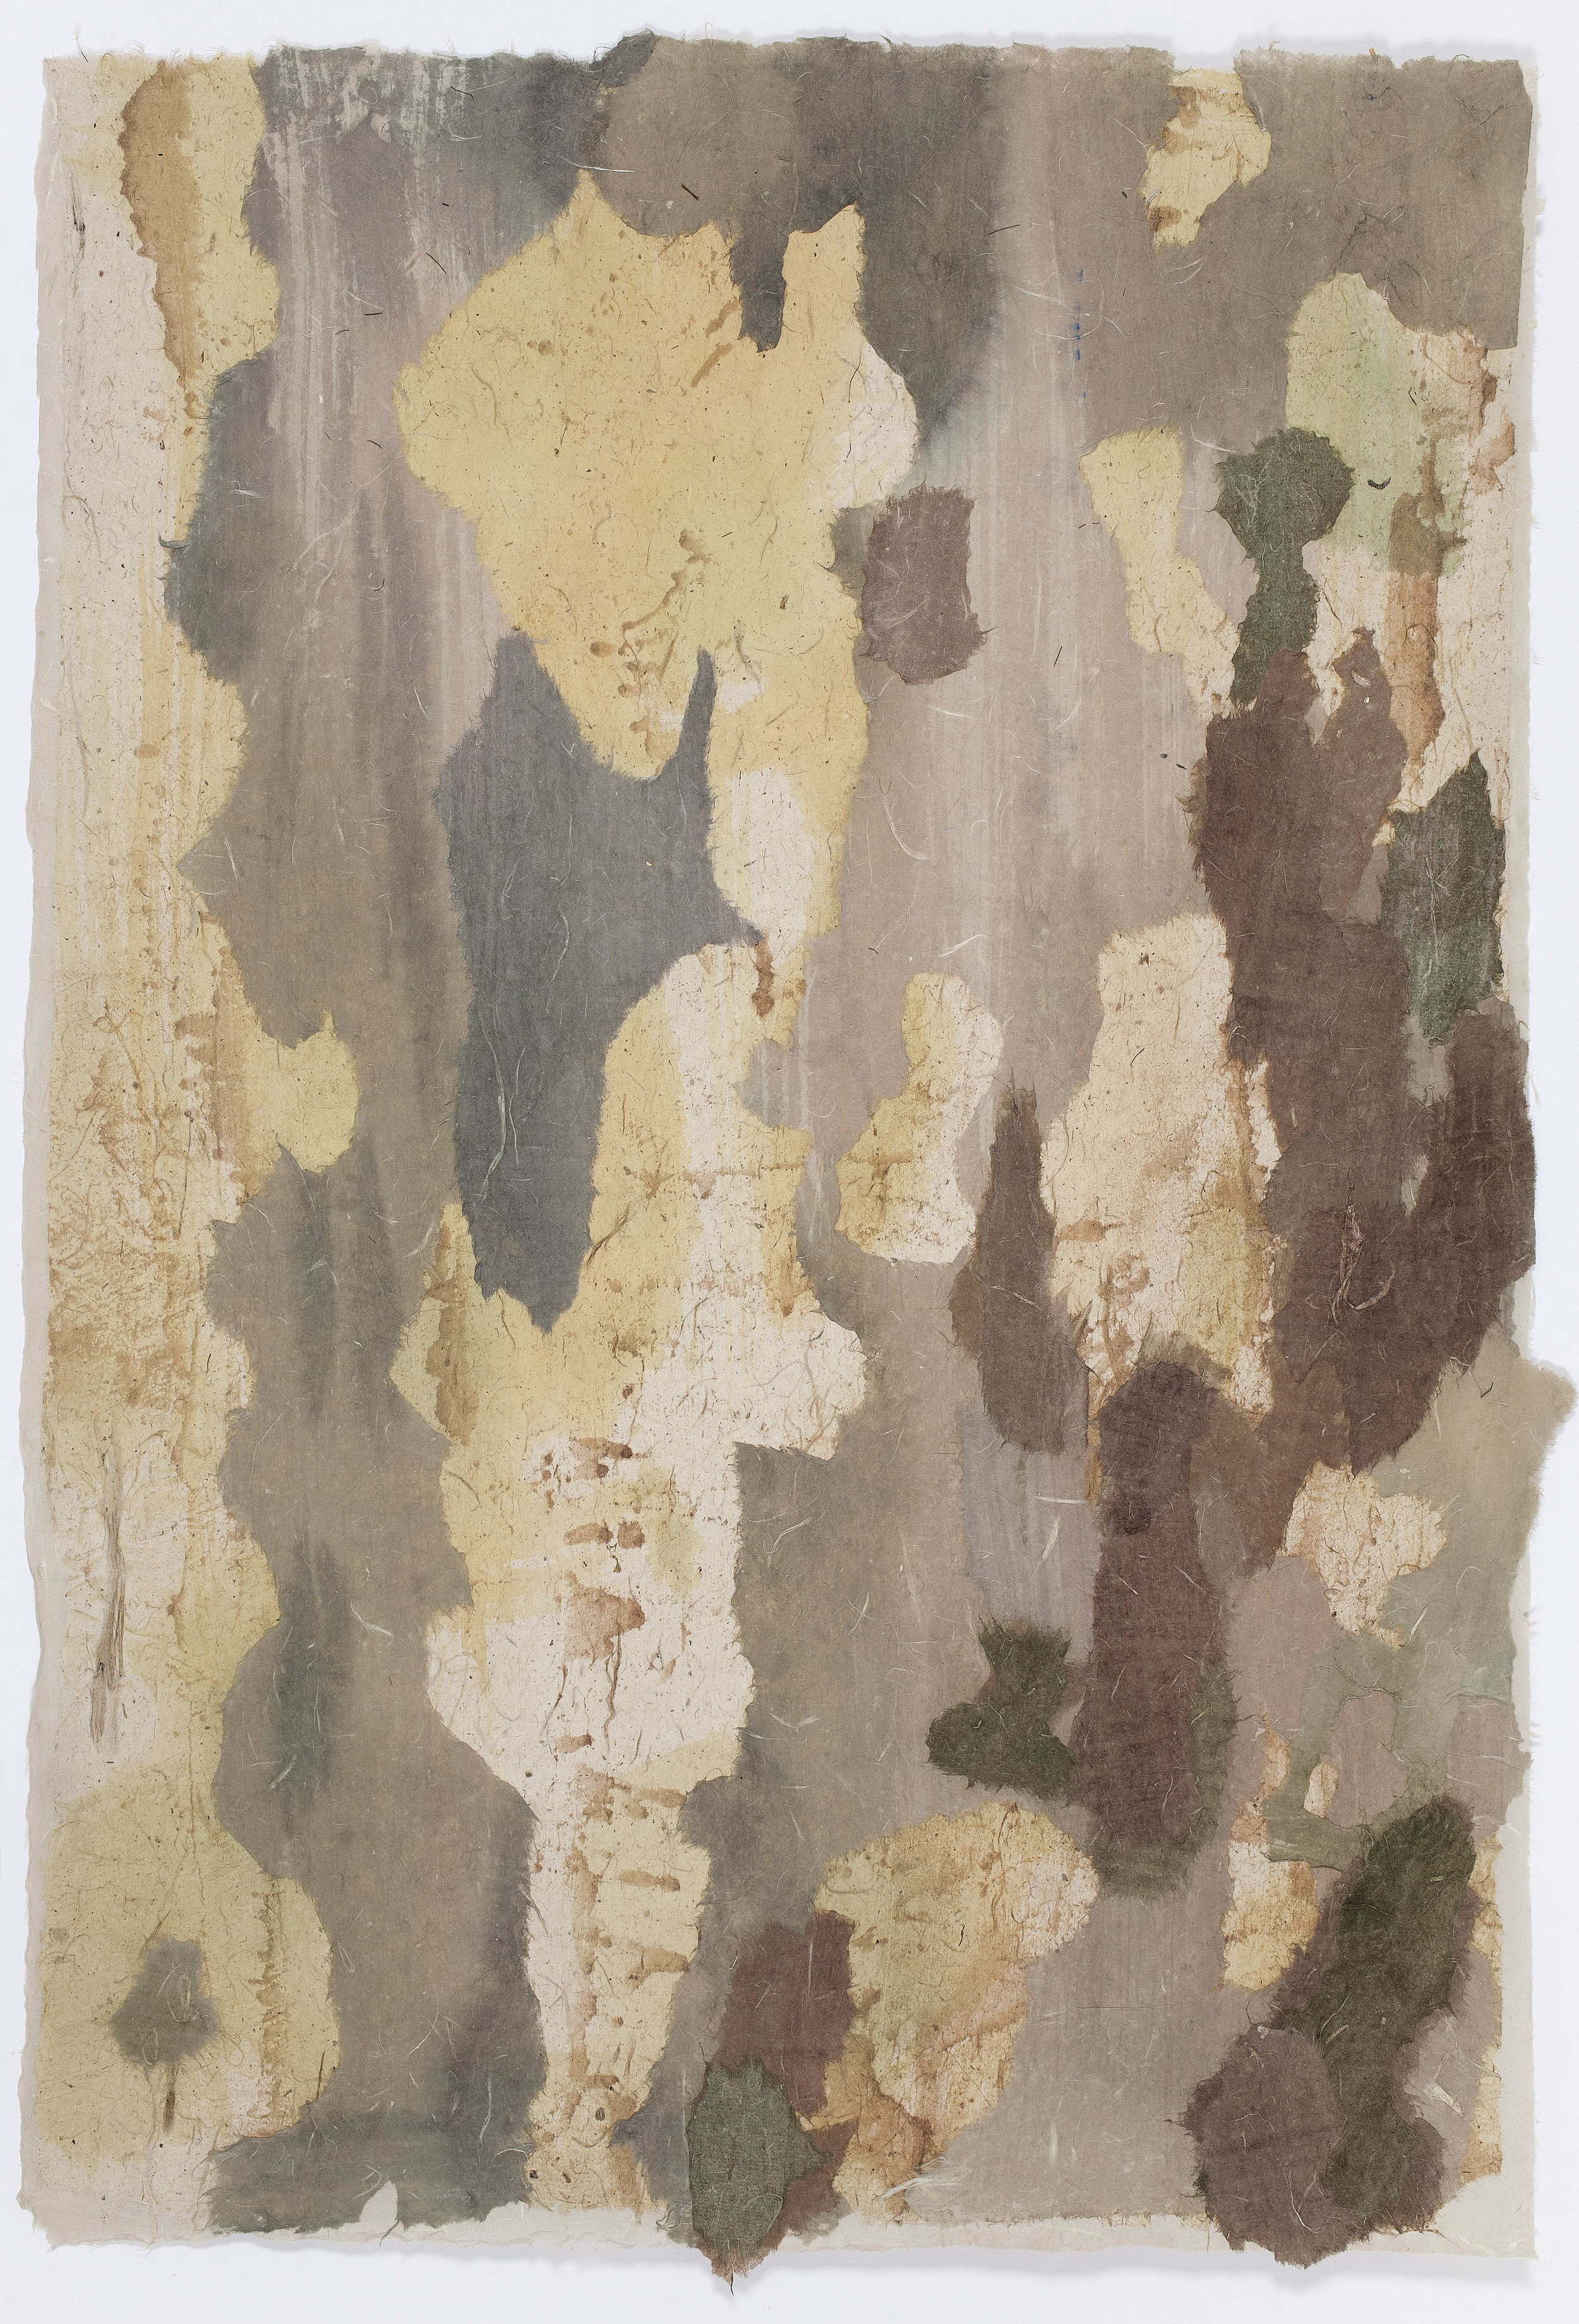 Bo Zhang. Tree Bark# 6. Mixed media on rice paper. 19in x 28 in. 2013.